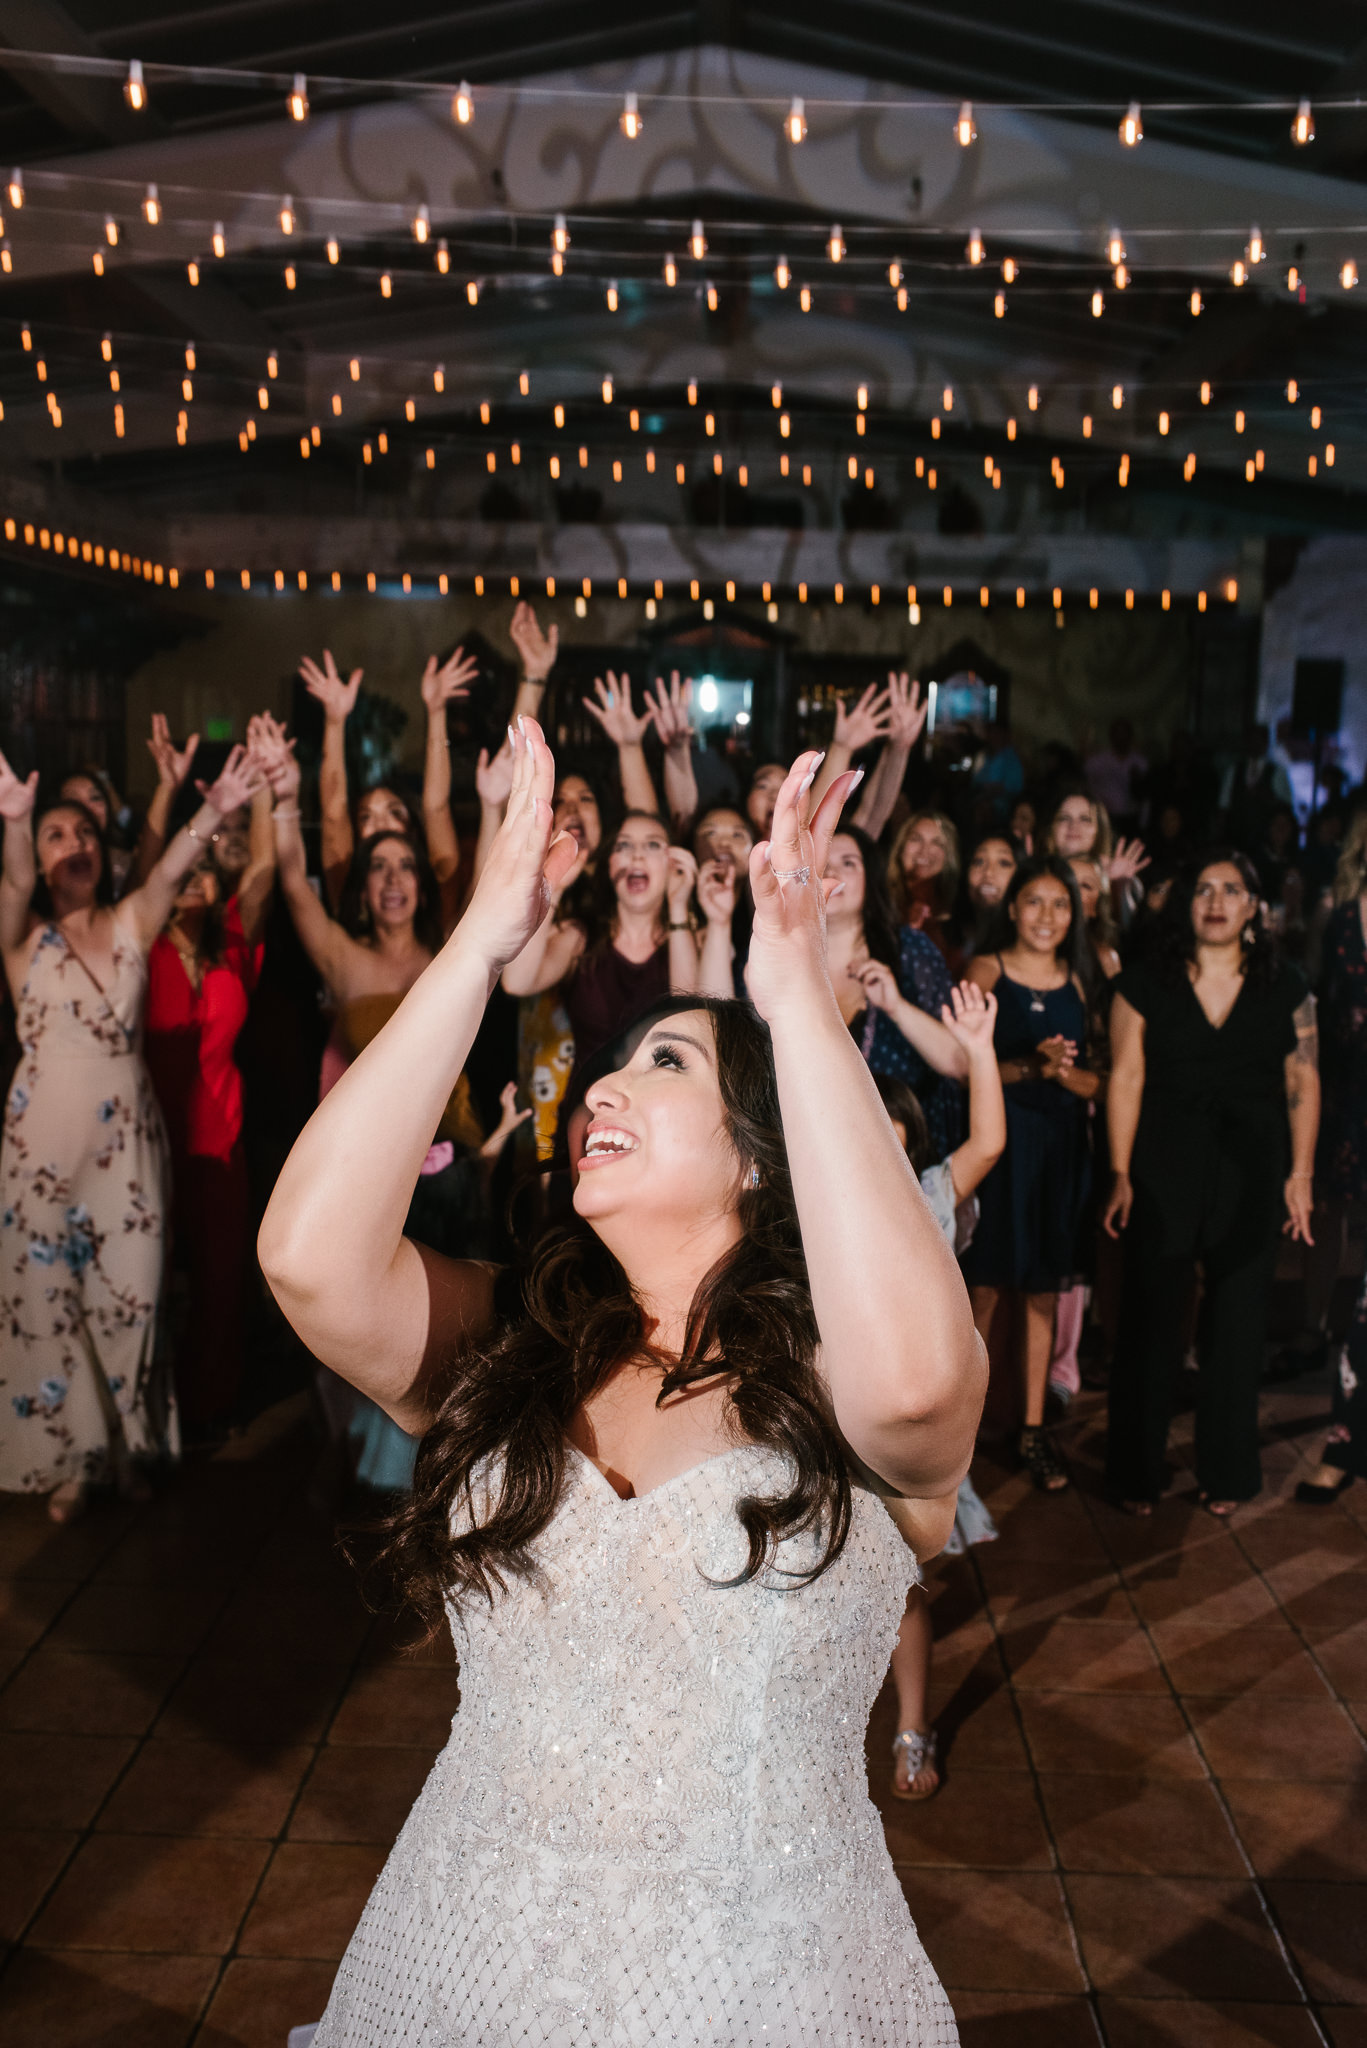 2019-04-05_Brittany_and_Nick_-_Married_-_San_Juan_Capistrano-156.jpg